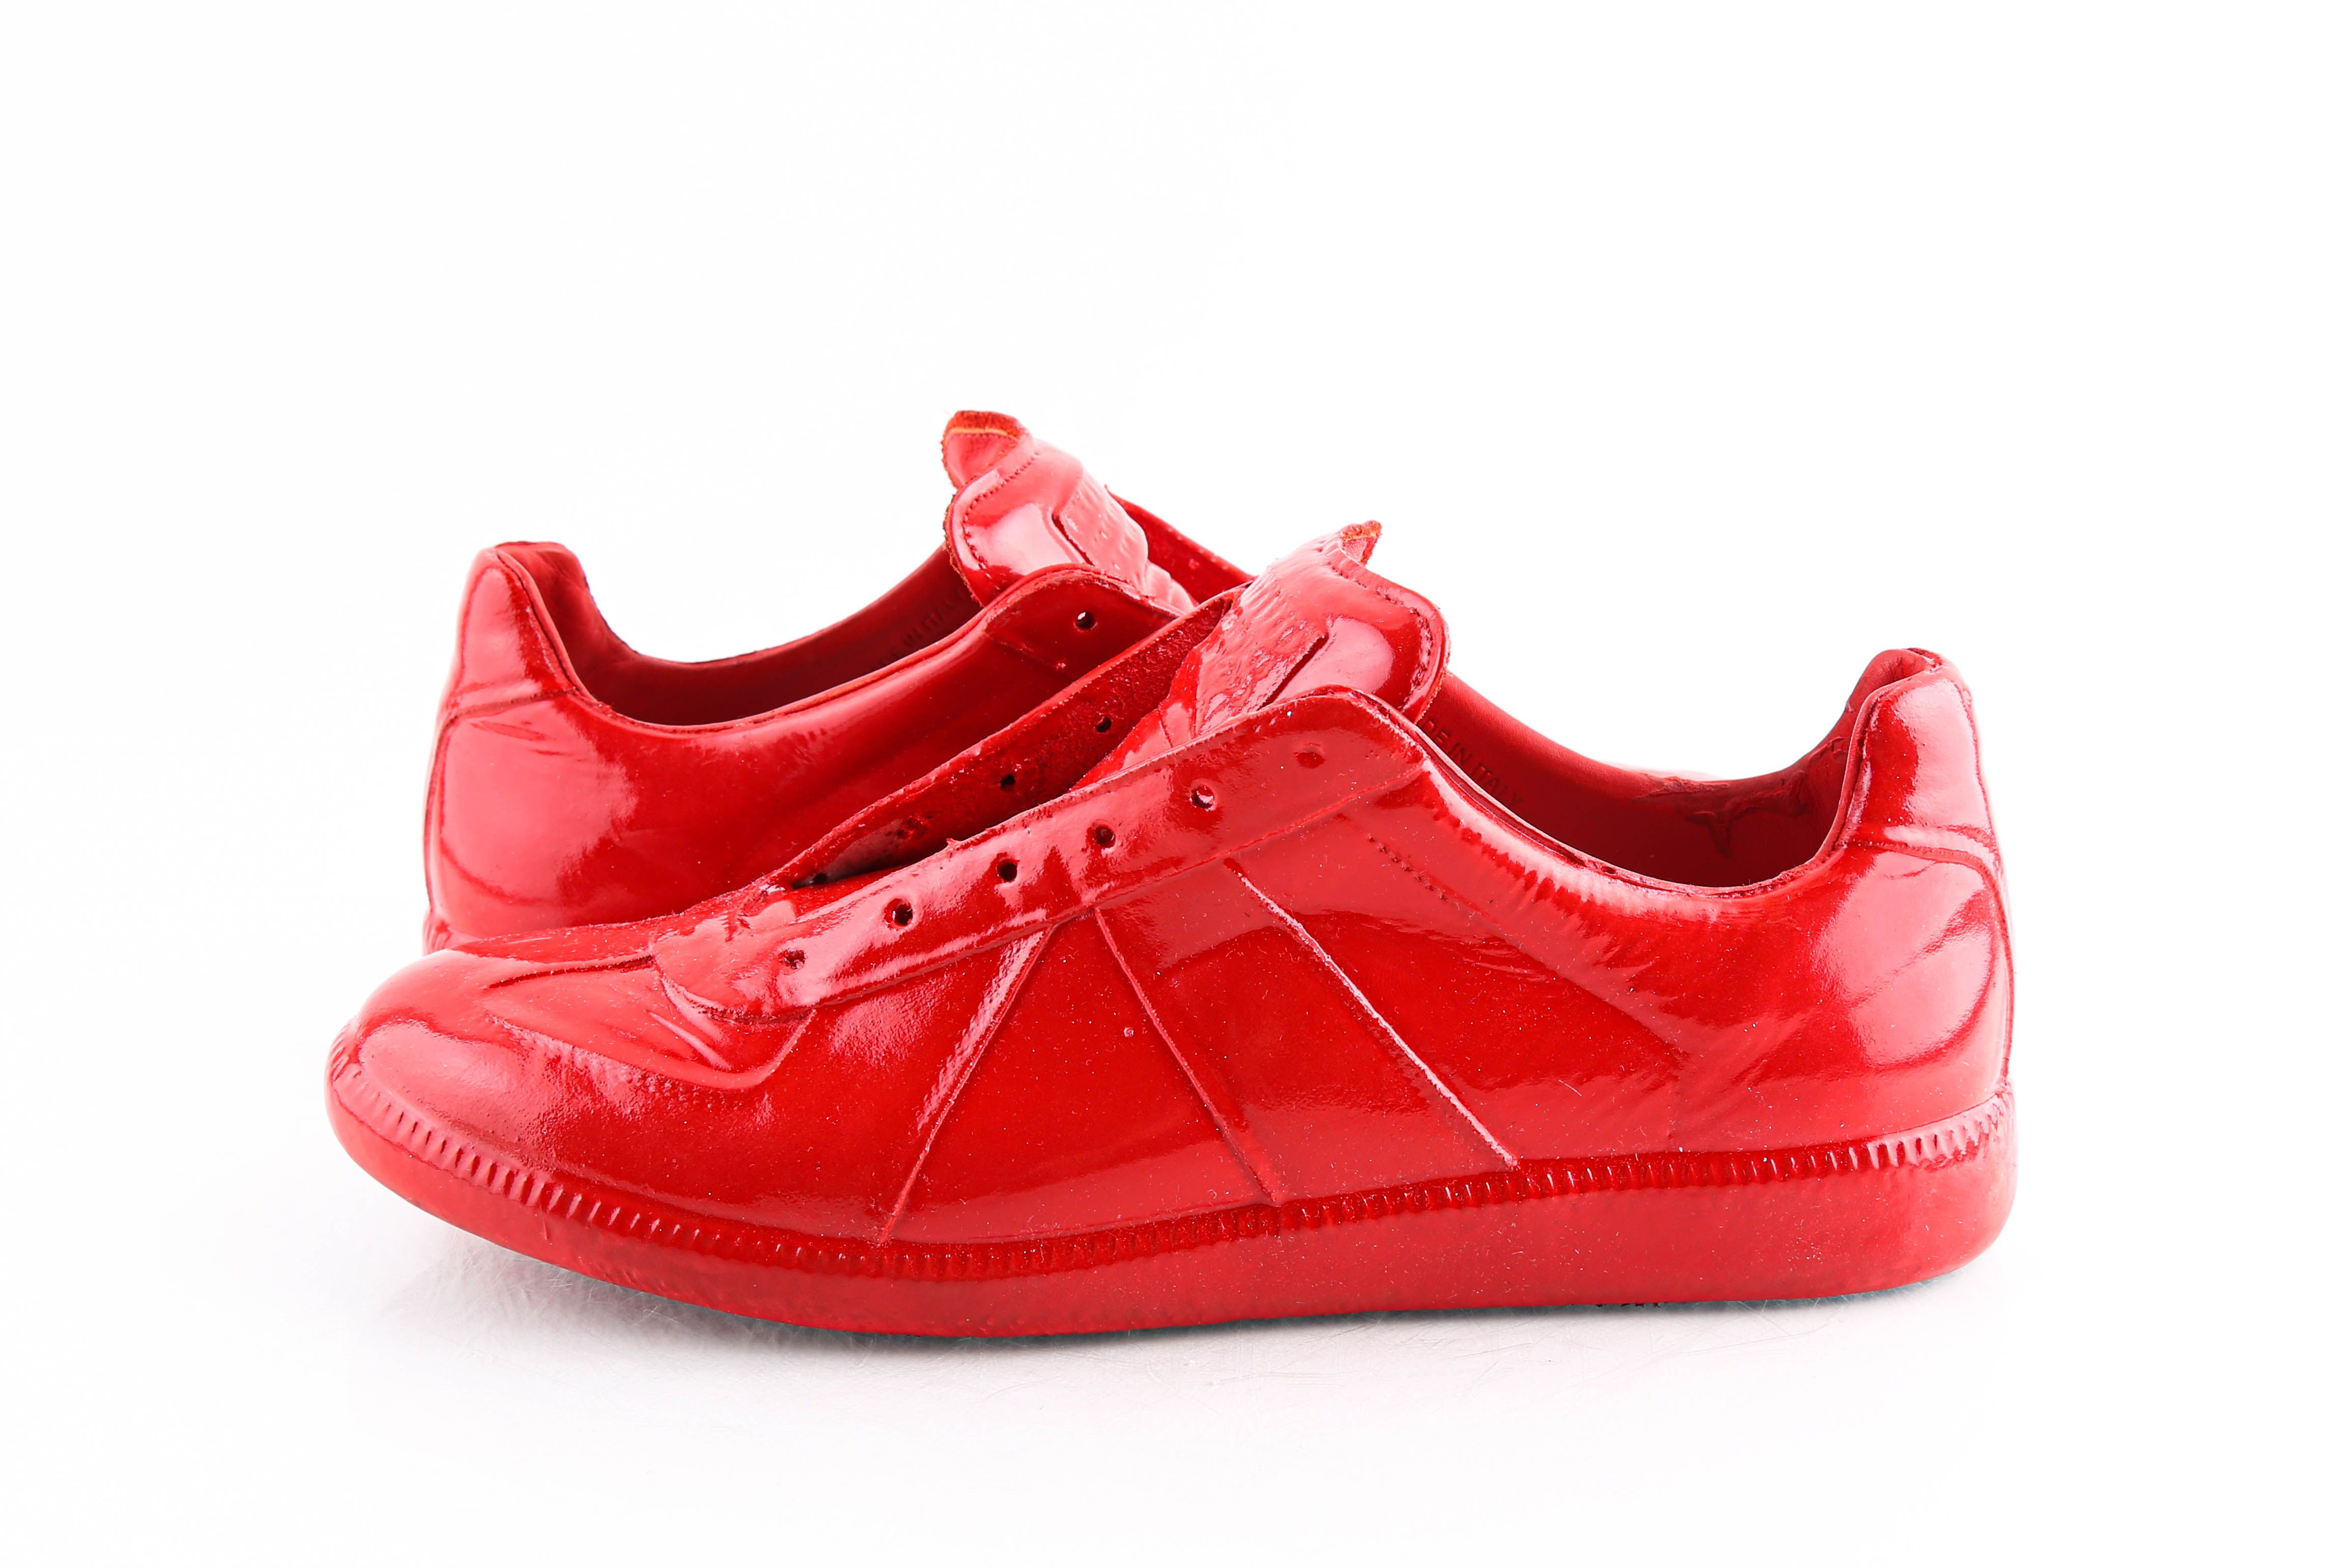 Maison Martin Margiela Red 22 Low Top